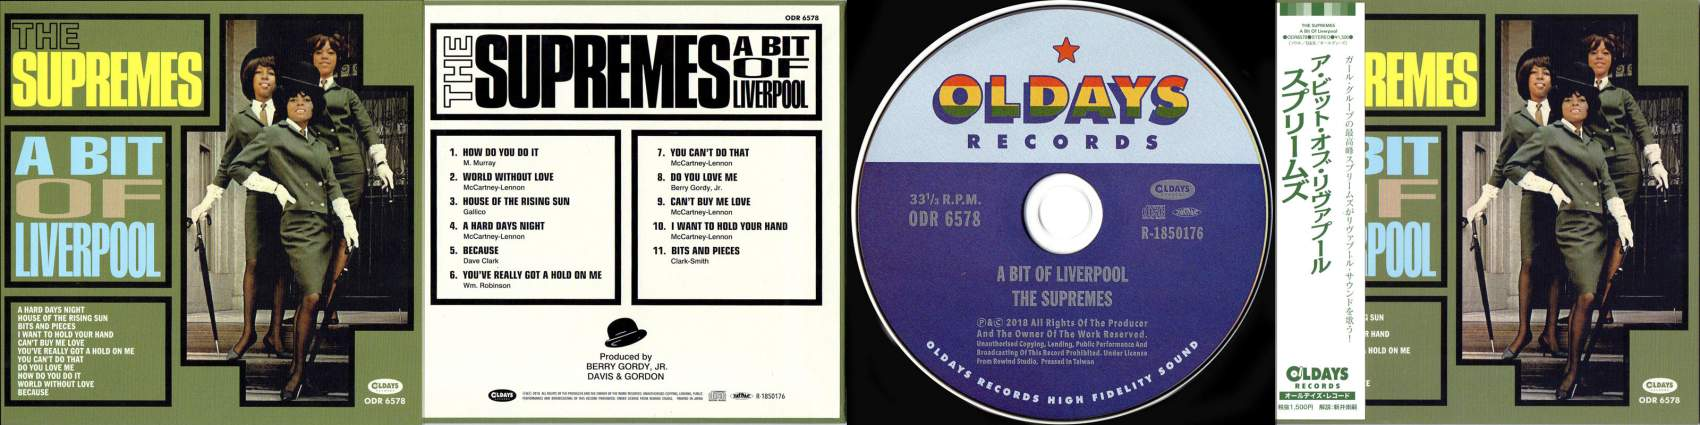 Name:  ODR6578 The Supremes - A Bit Of Liverpool [composite].jpg Views: 416 Size:  118.5 KB